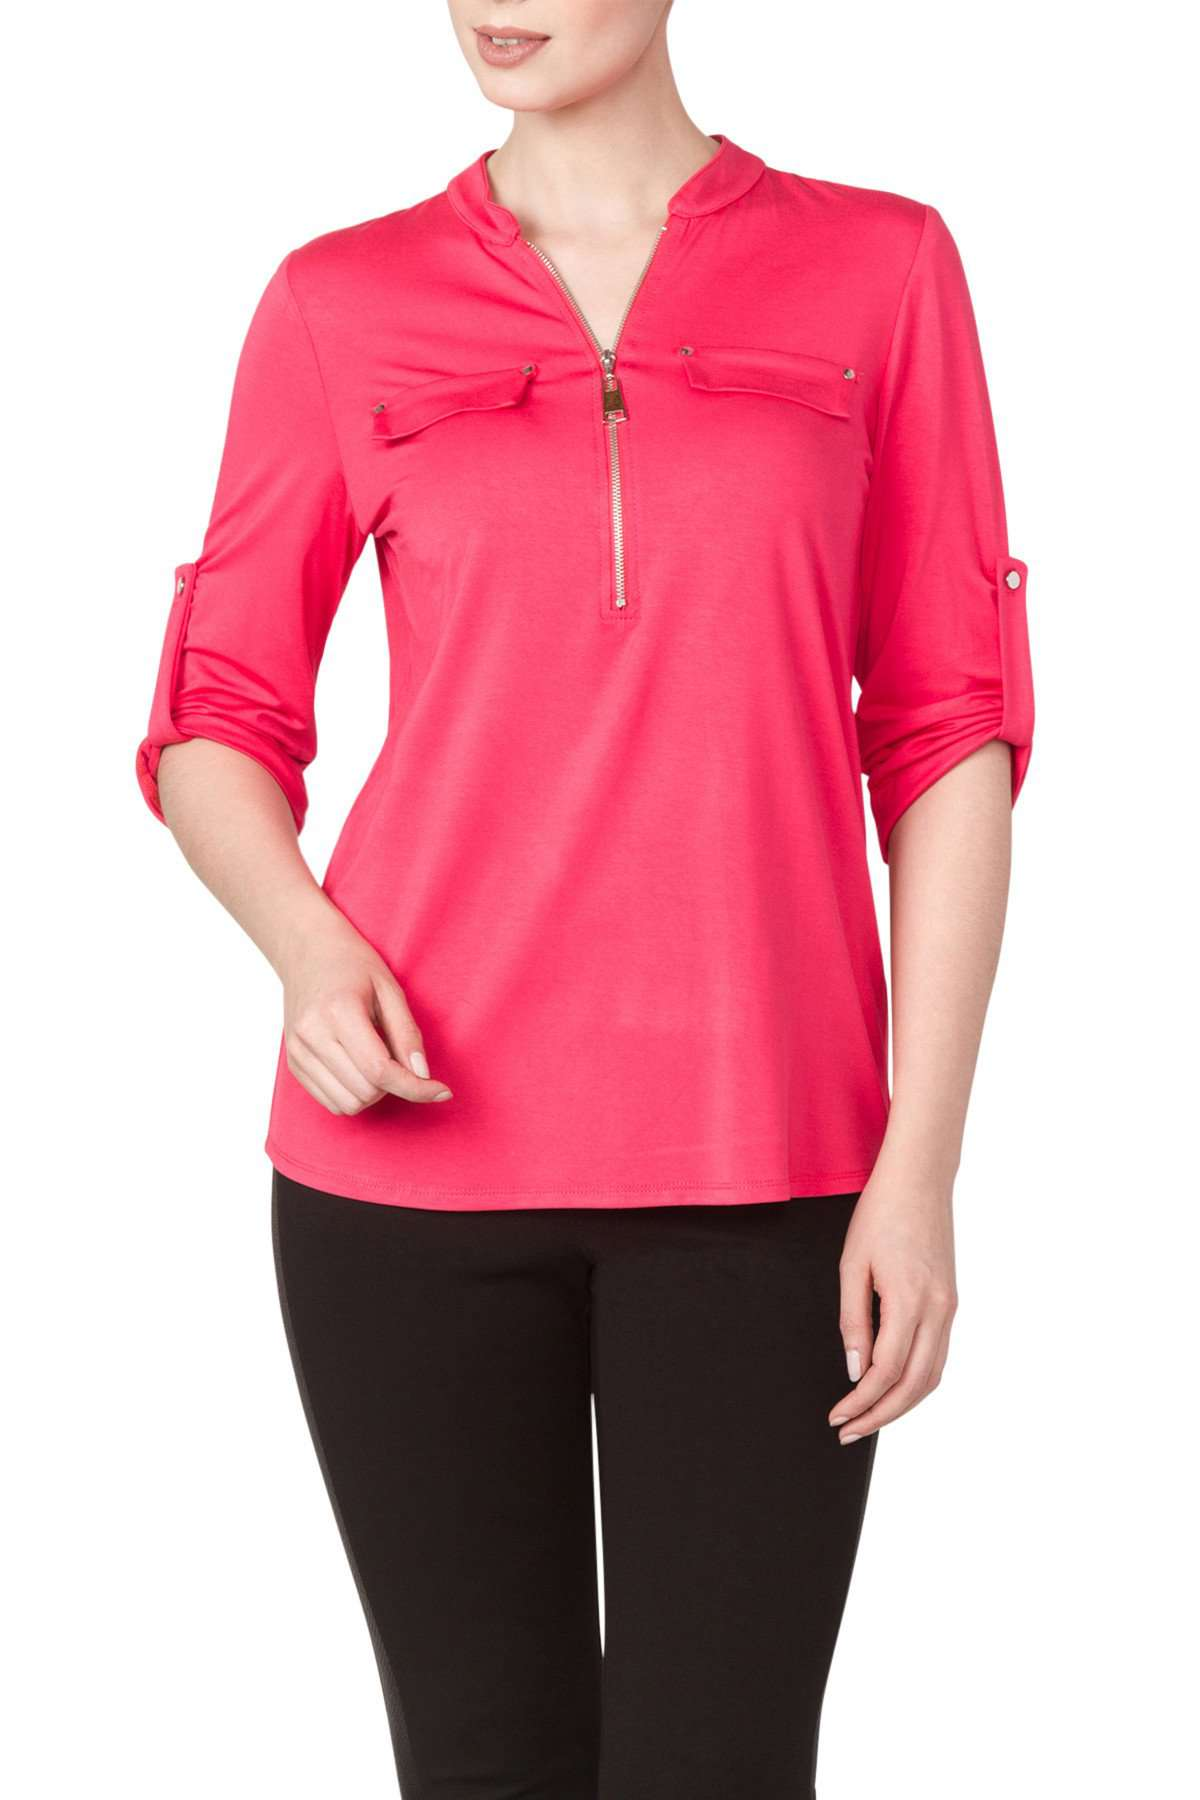 Womens Pink Blouse - Yvonne Marie